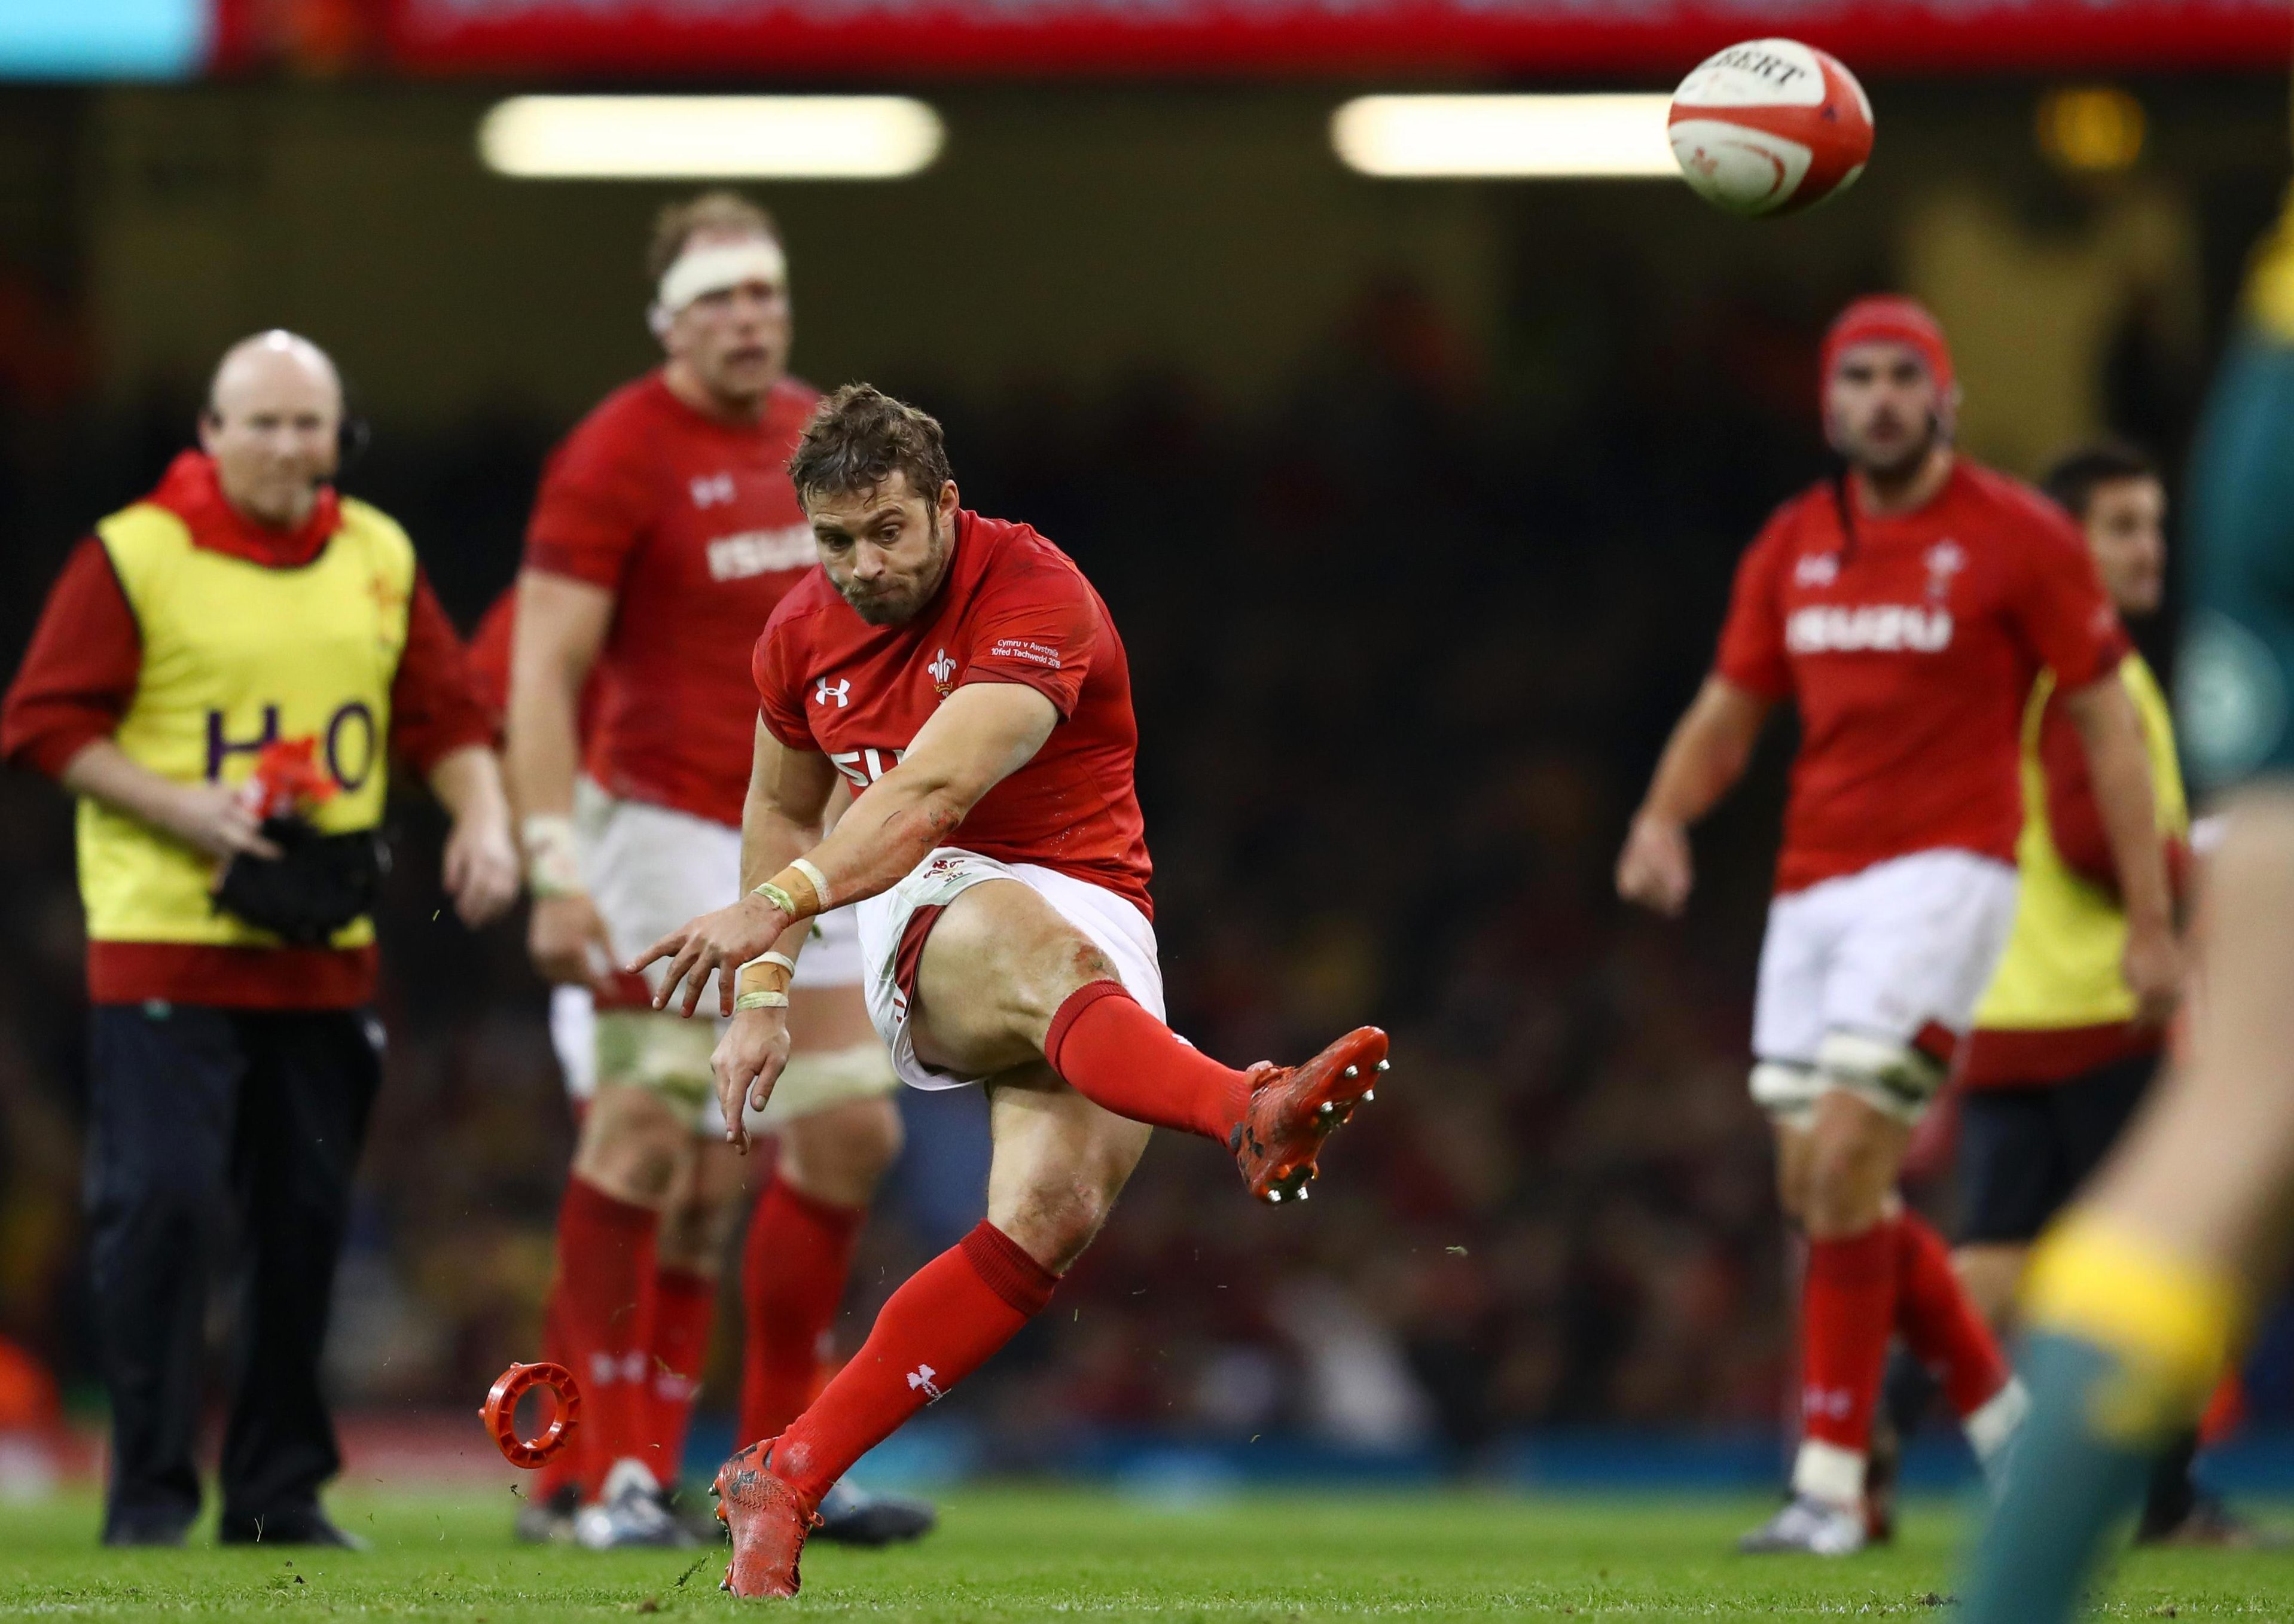 Leigh Halfpenny was originally on kicking duties - but a heavy blow saw him leave the pitch